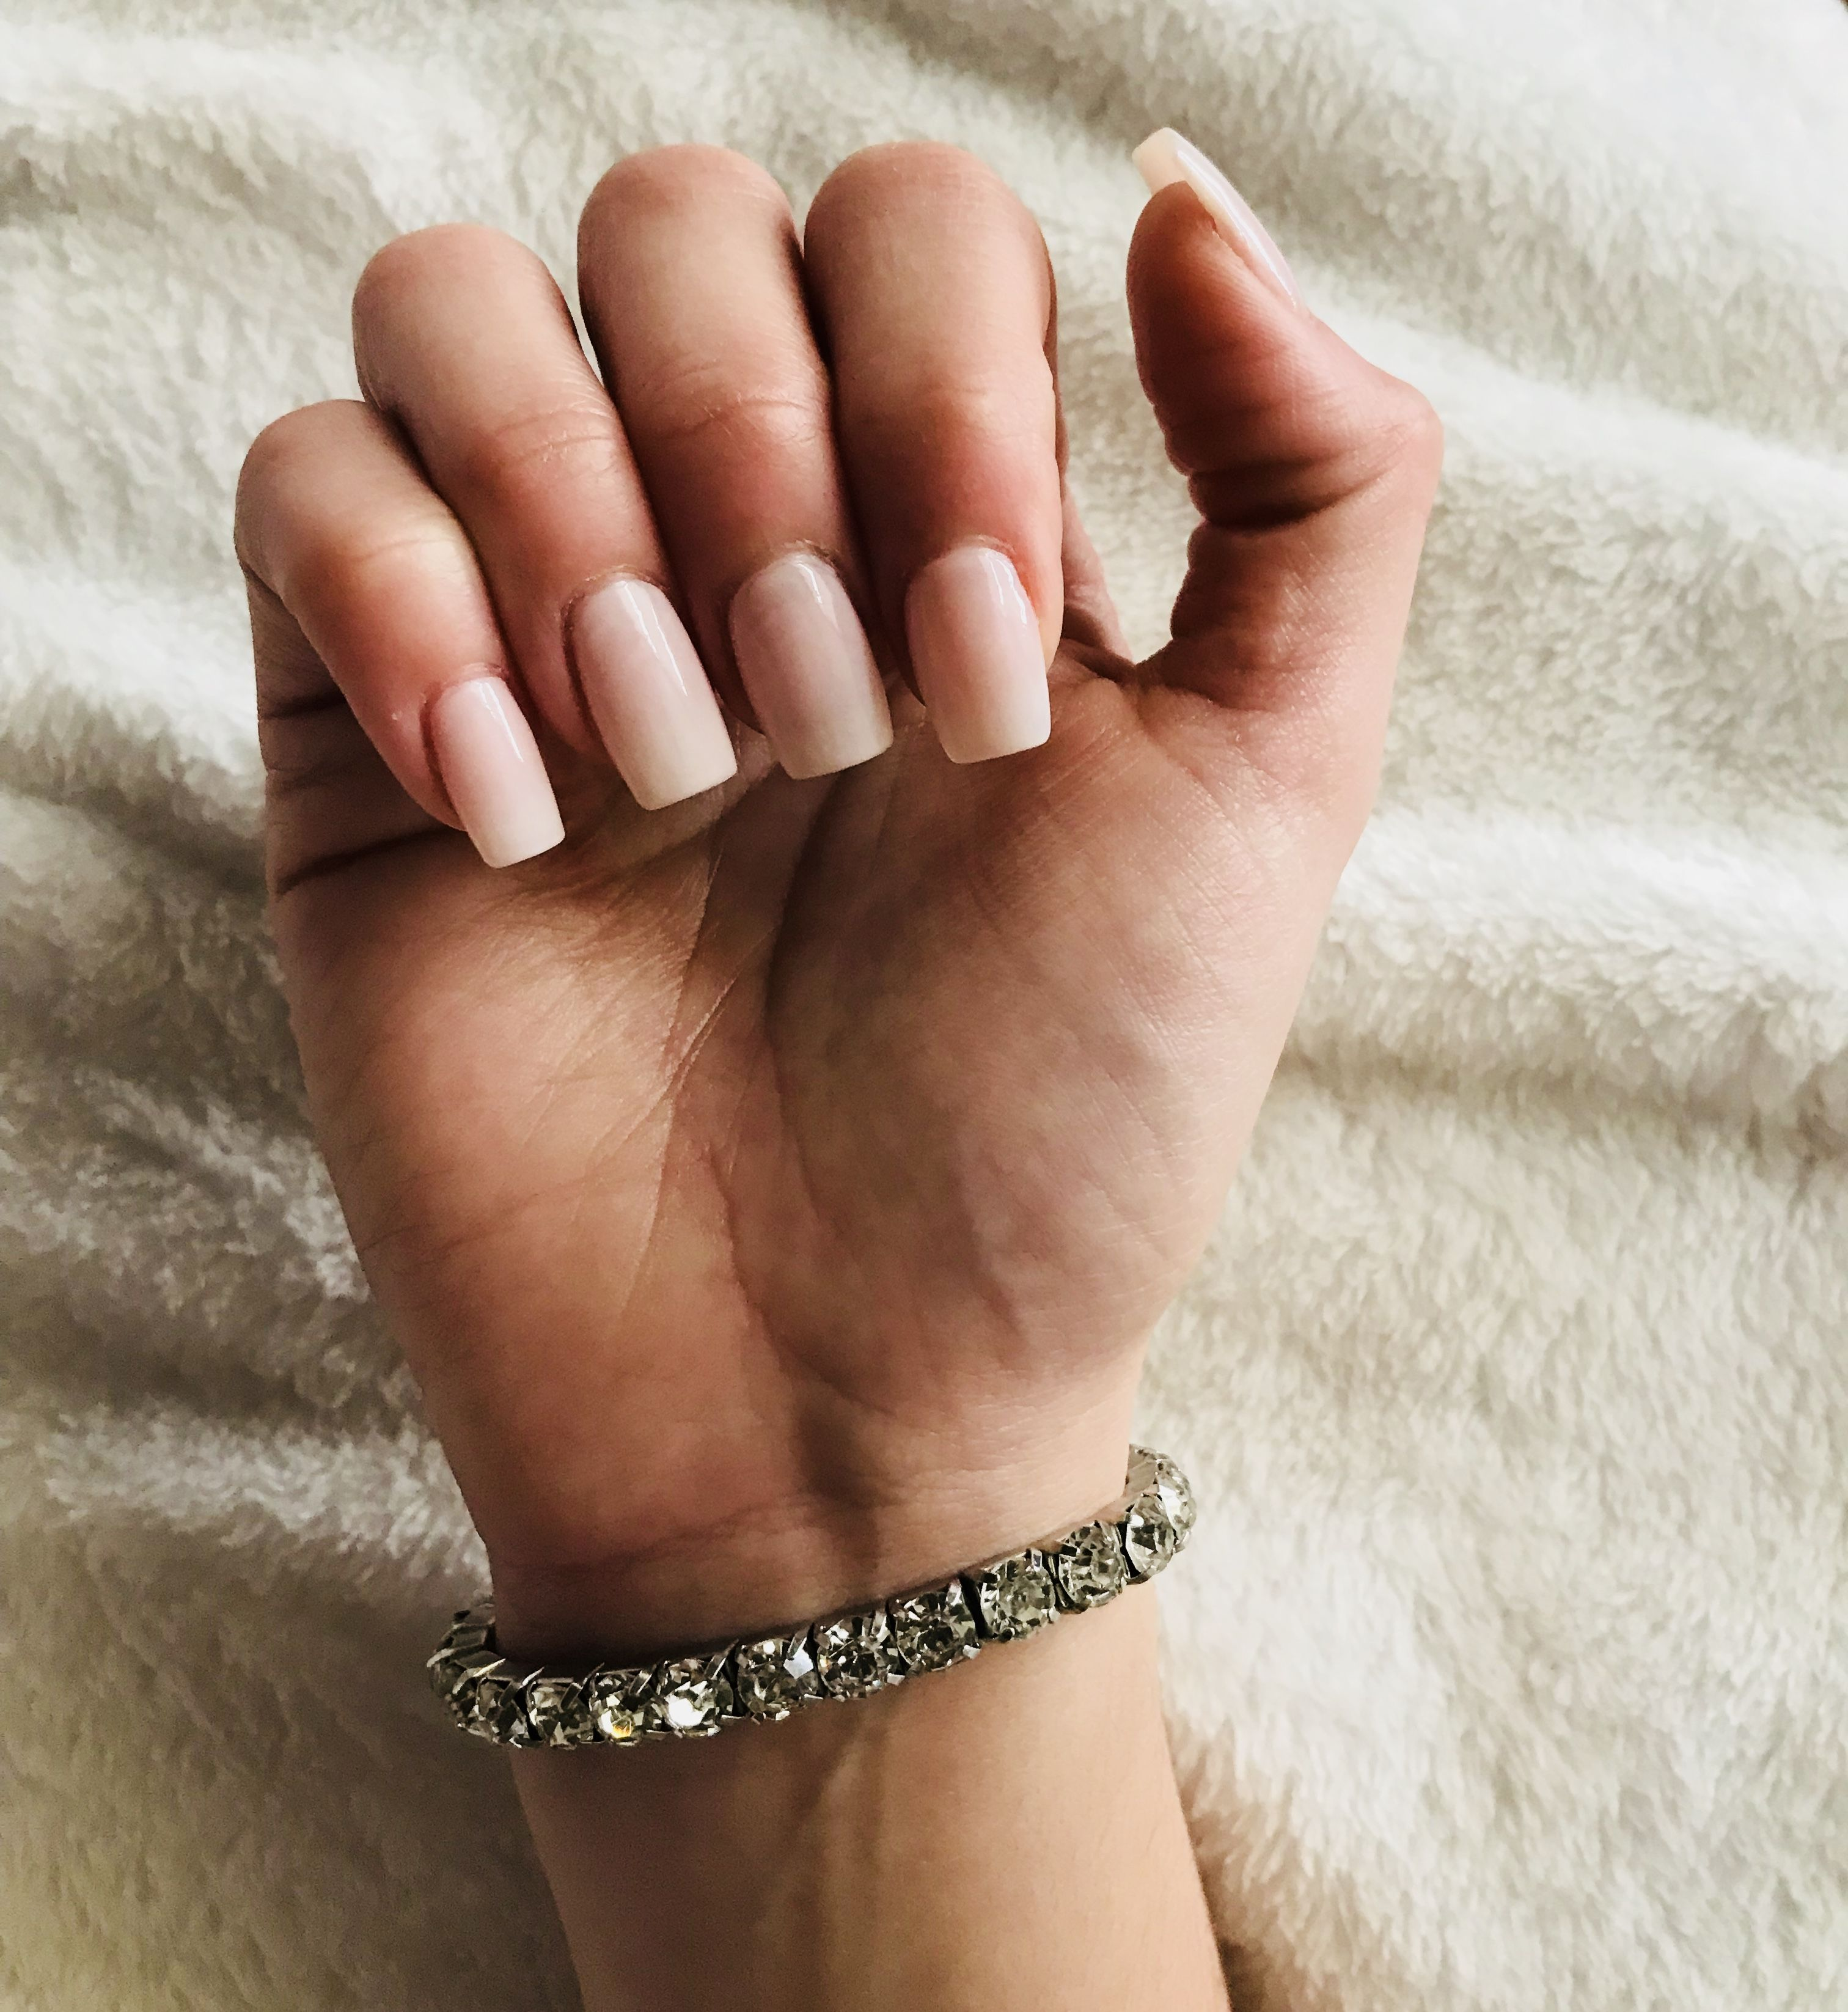 Pin By Lexi Michelle On Nail D It Square Acrylic Nails Thin Nails Pink Nails